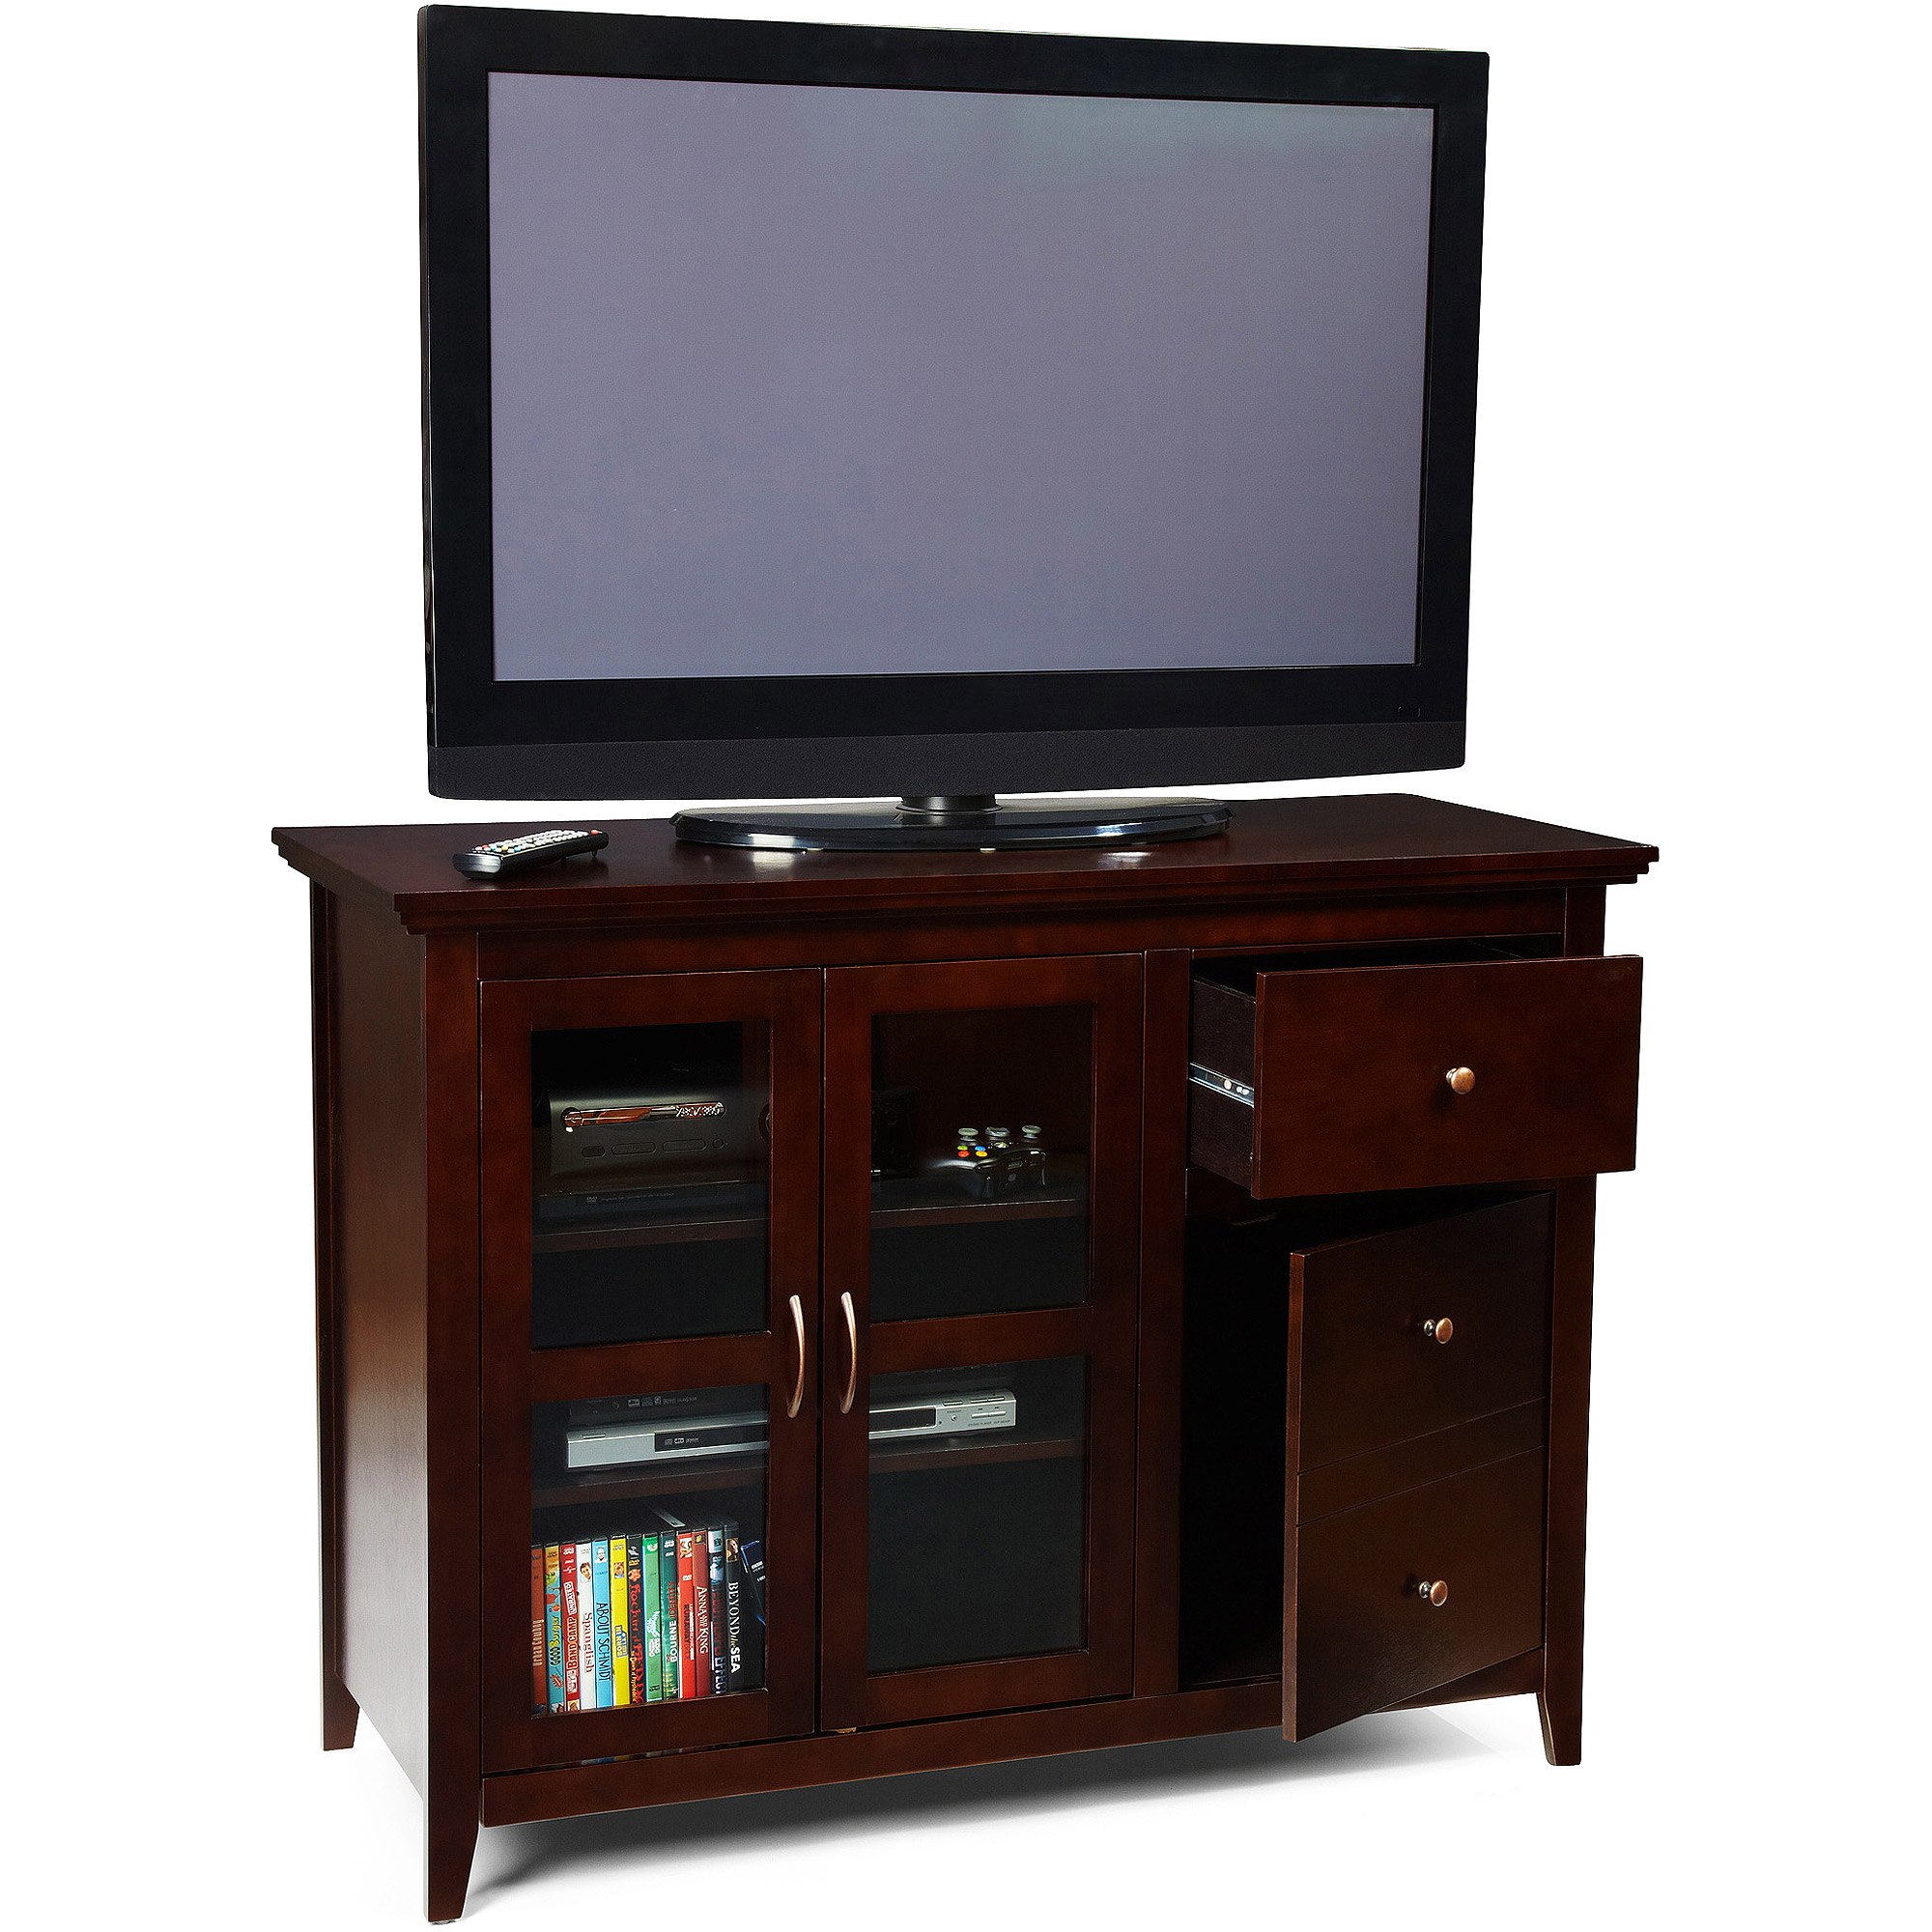 "Convenience Concepts Sierra Highboy Black TV Stand for TVs up to 50"", Multiple Colors"